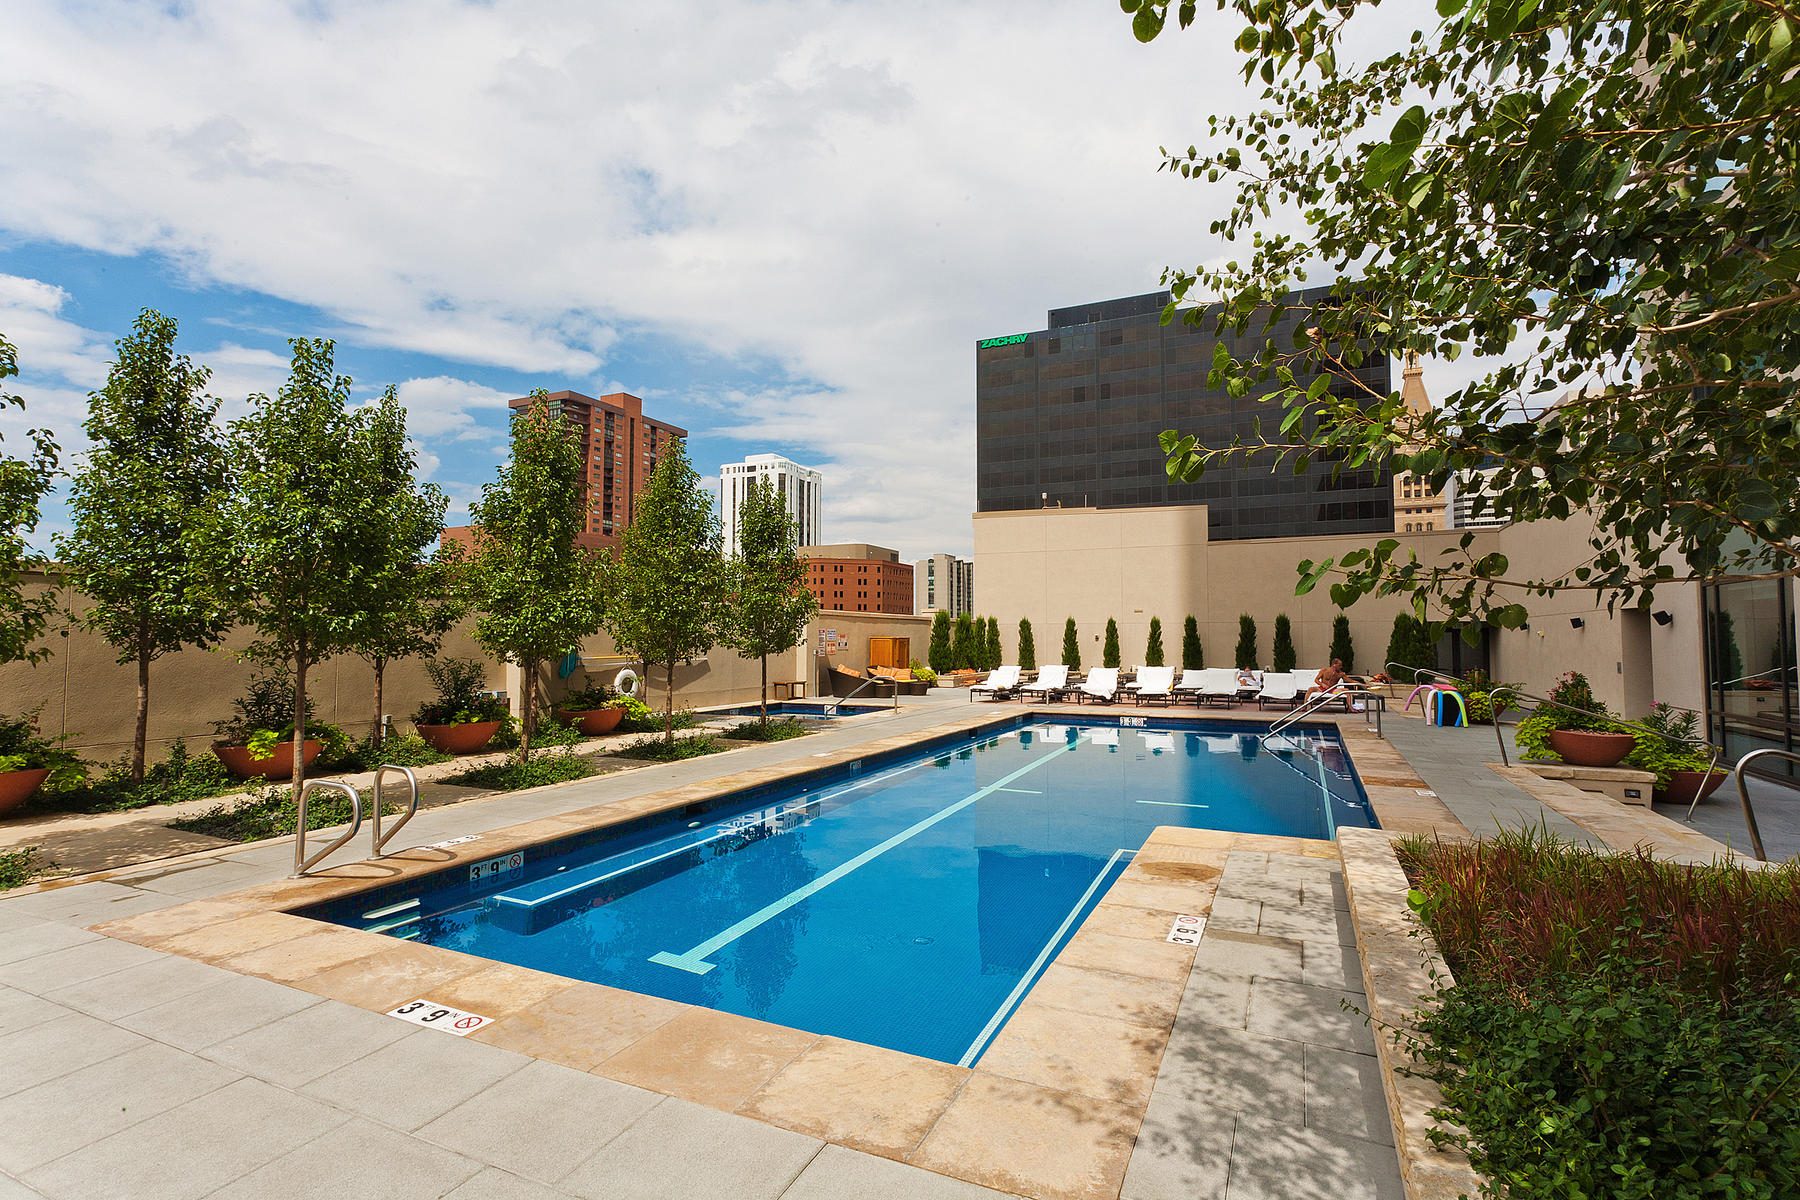 Additional photo for property listing at 1133 14th St #3750 1133 14th St #3750 Denver, Colorado 80202 United States